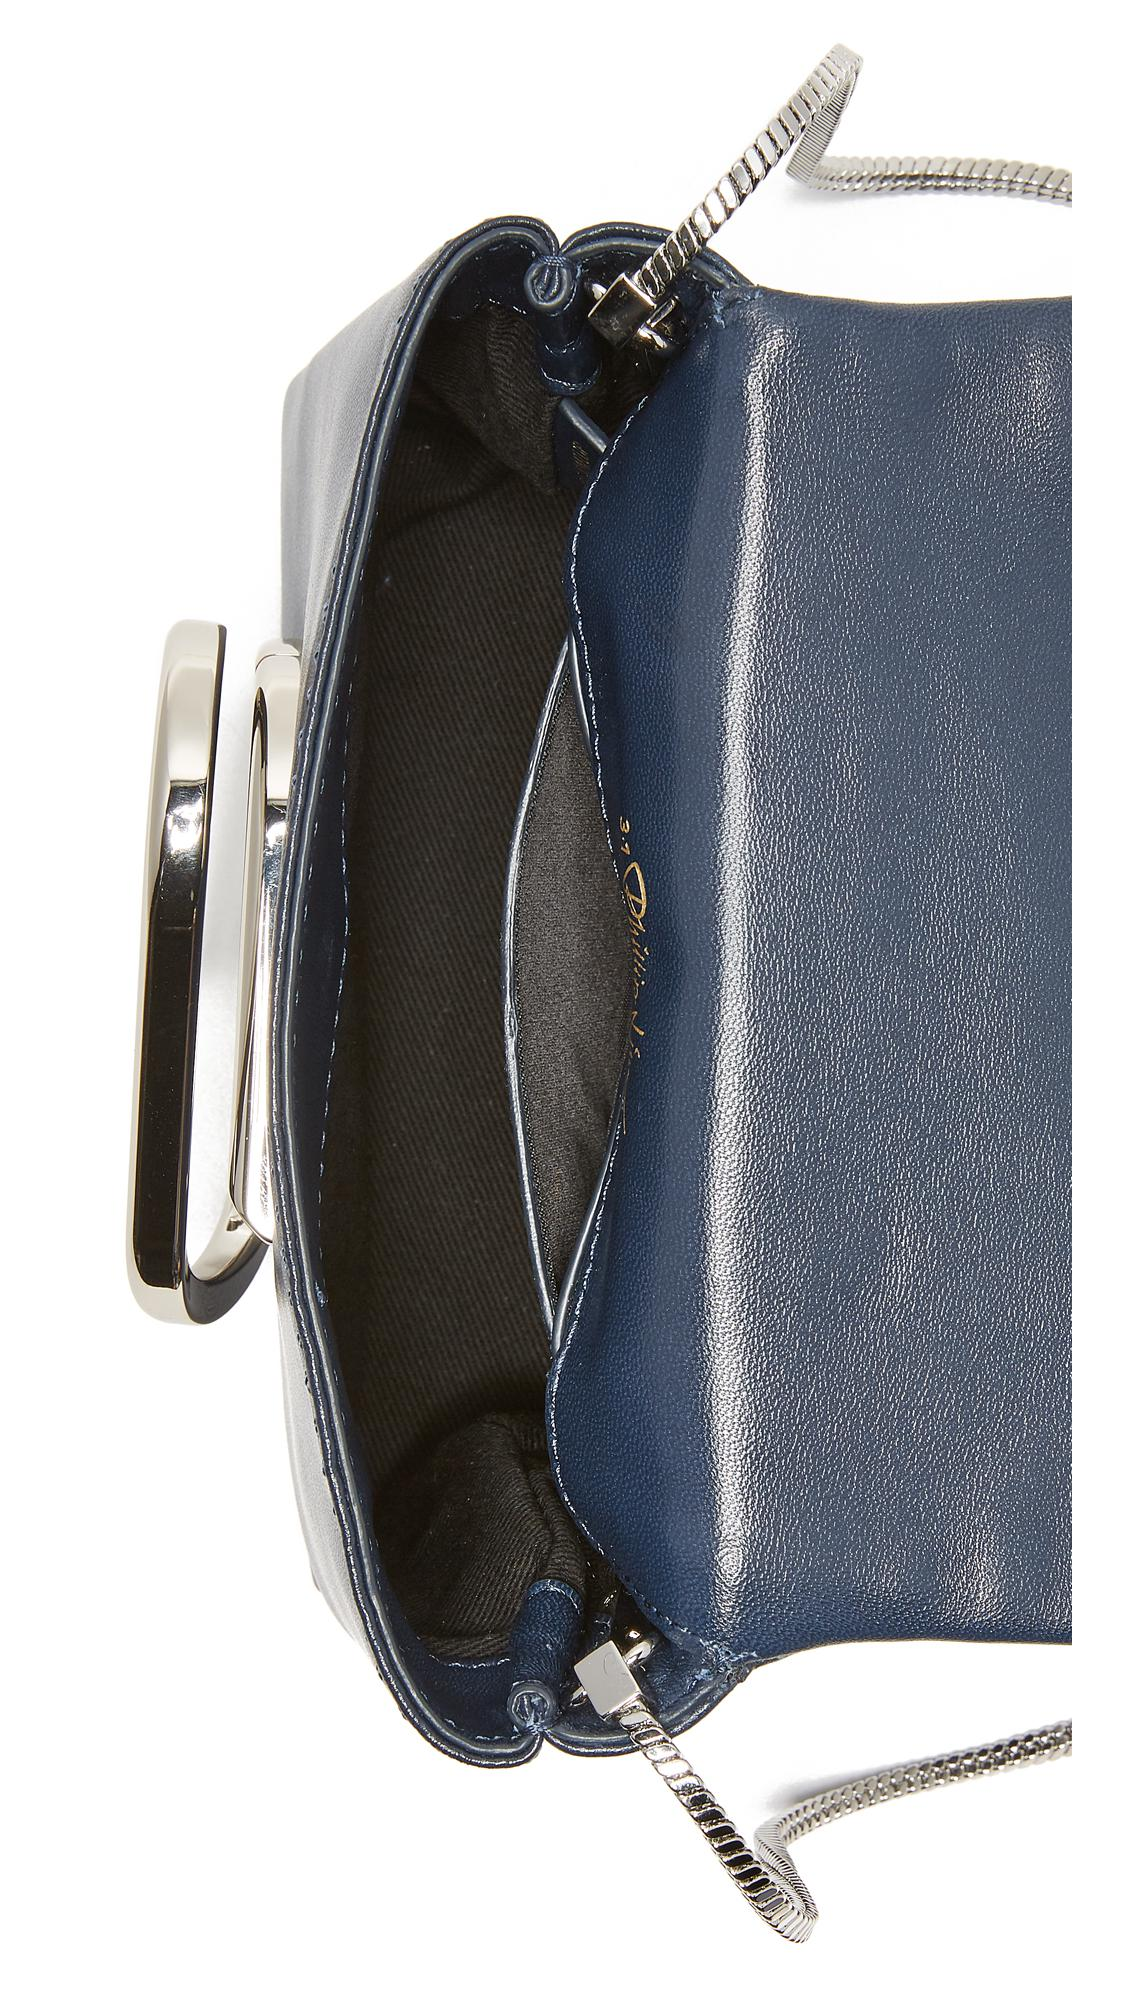 3.1 Phillip Lim Leather Alix Micro Cross Body Bag in Navy (Blue)